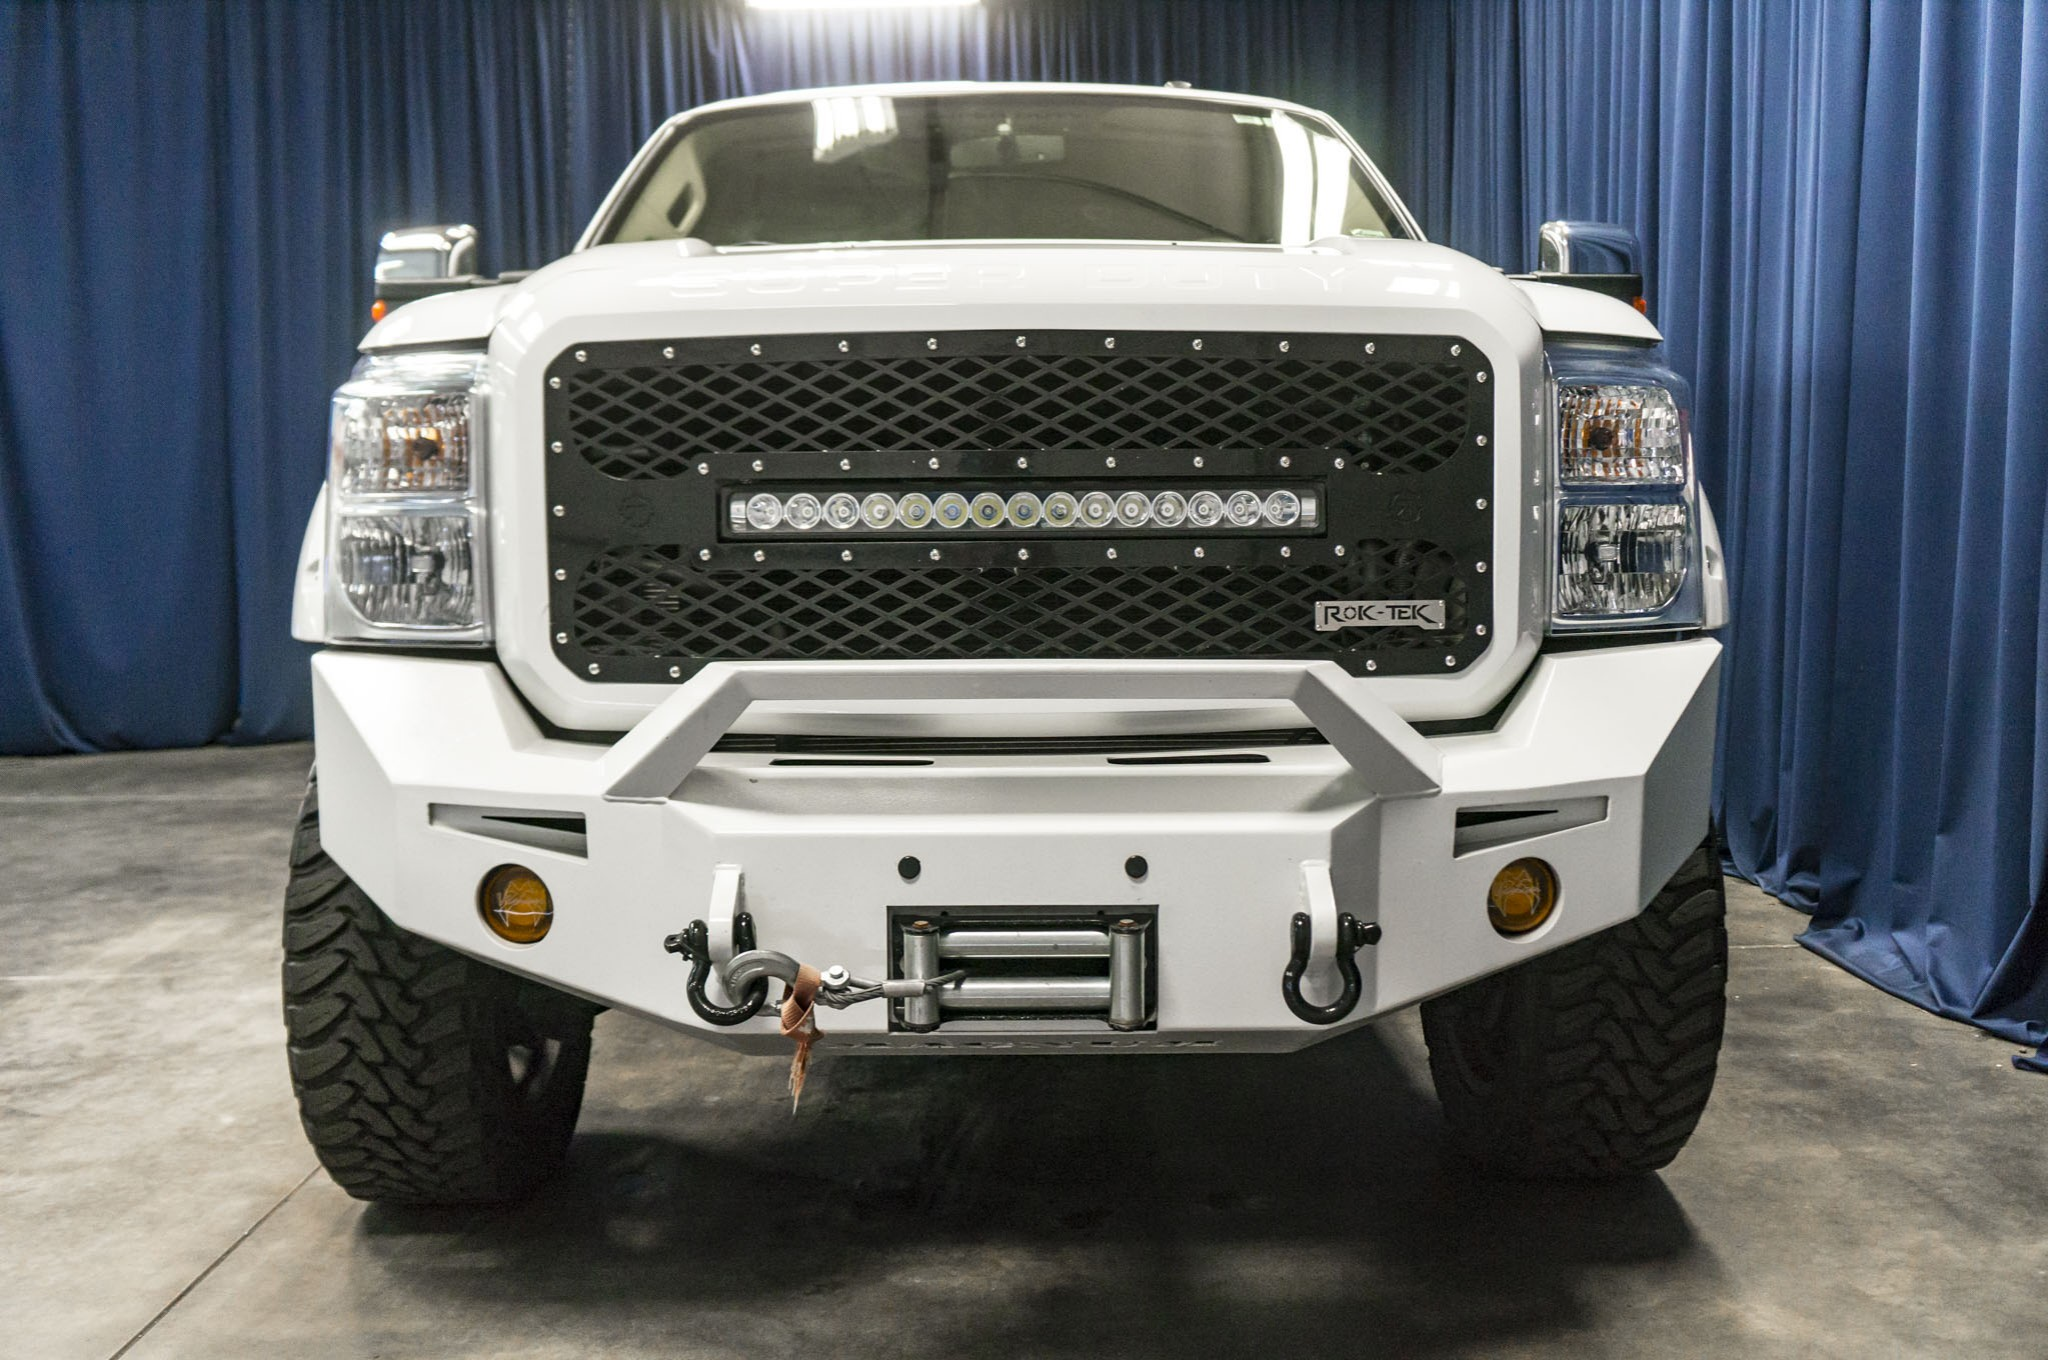 used lifted 2015 ford f 350 king ranch 4x4 diesel truck for sale 25955. Black Bedroom Furniture Sets. Home Design Ideas